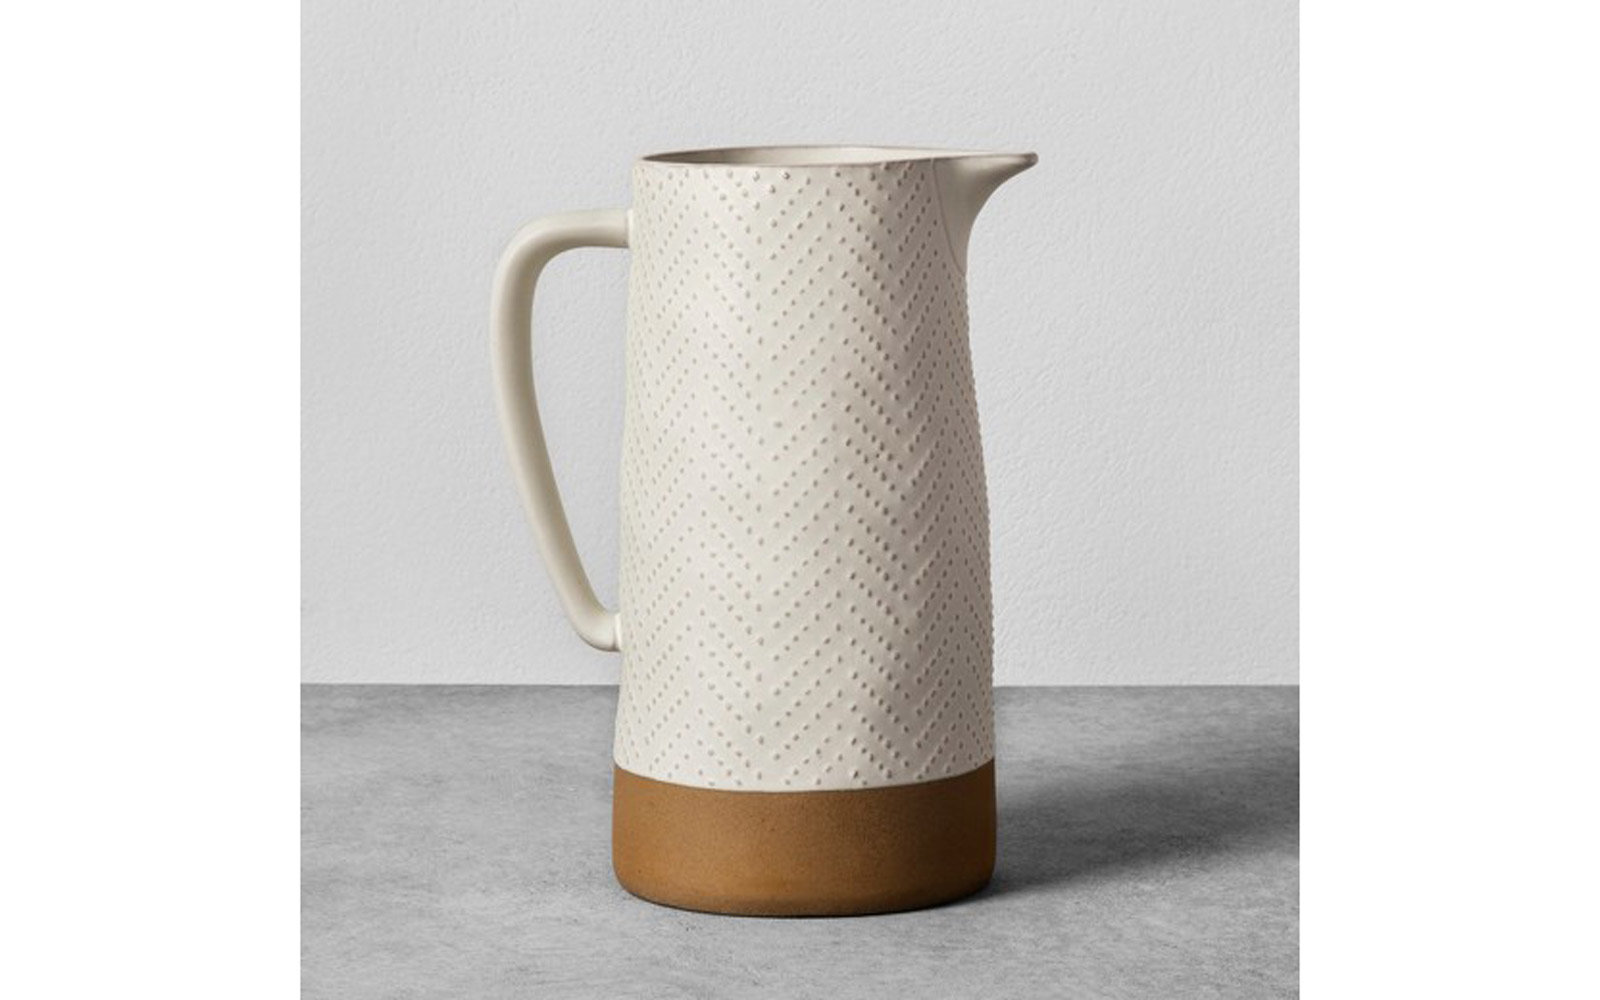 Hearth & Hand with Magnolia: Stoneware Pitcher